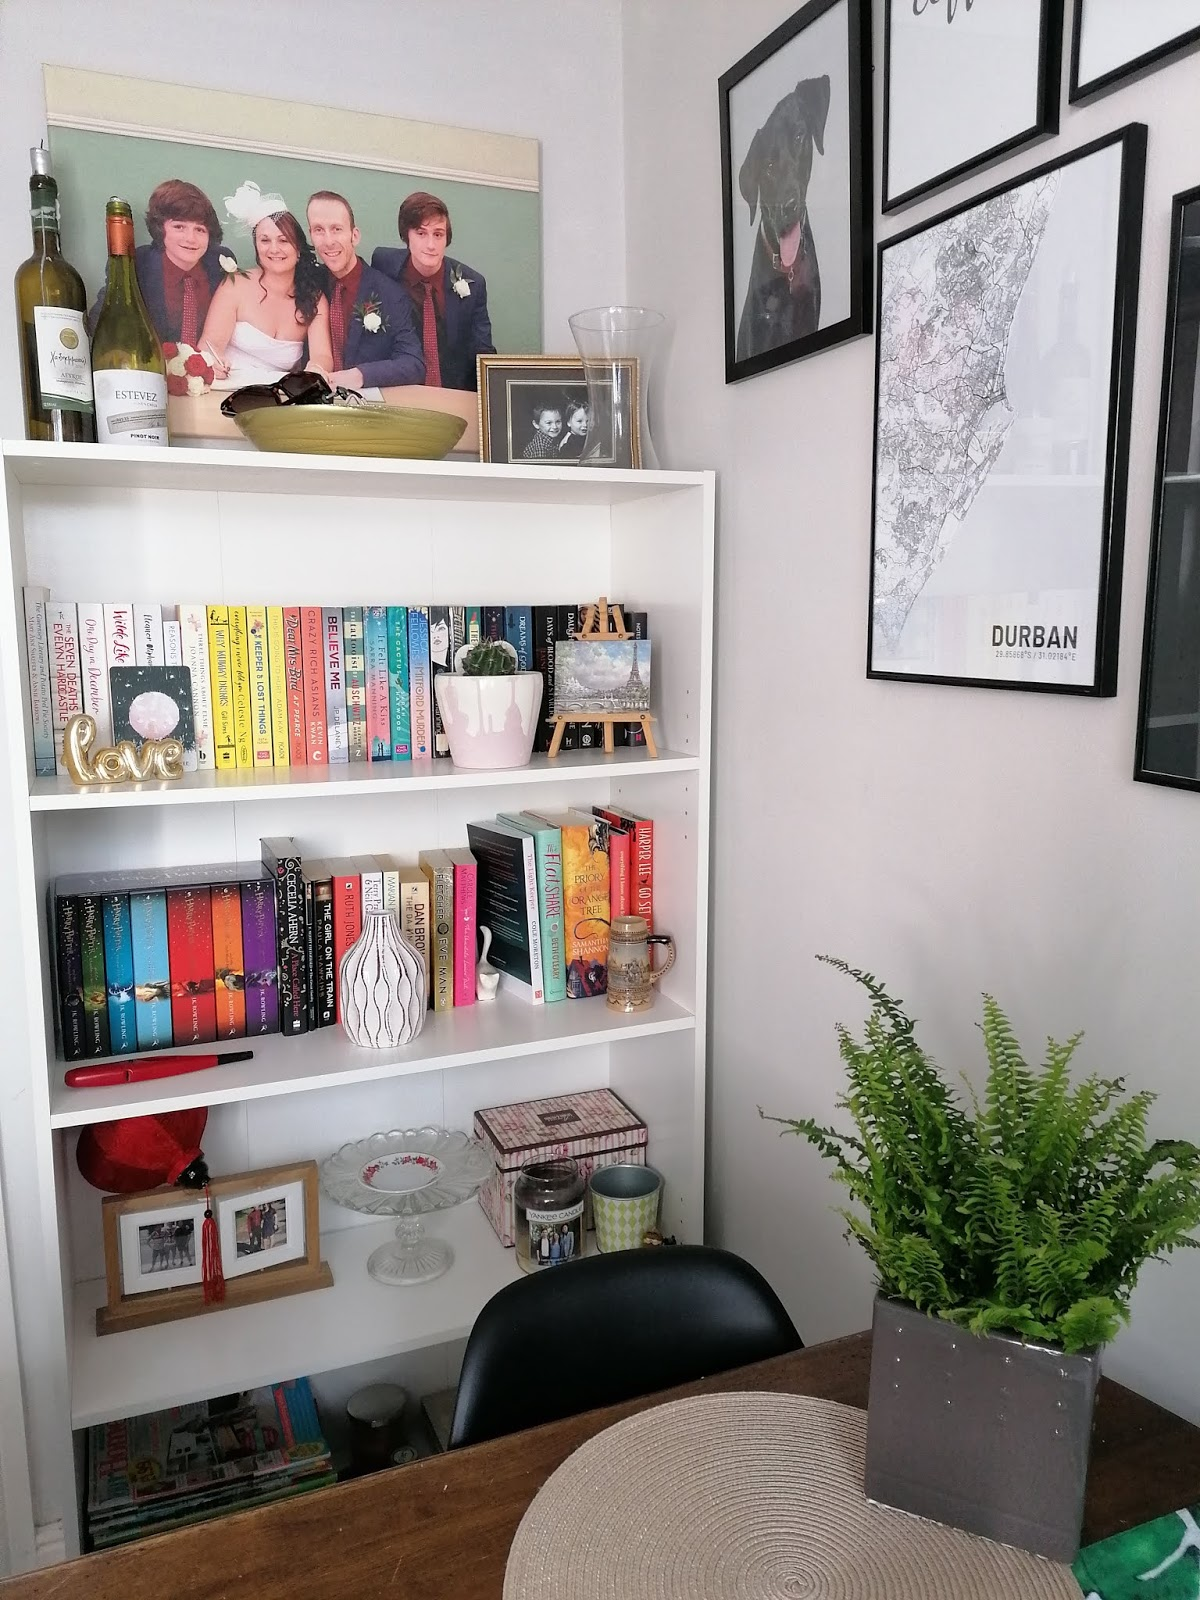 Bookcase from Ebay